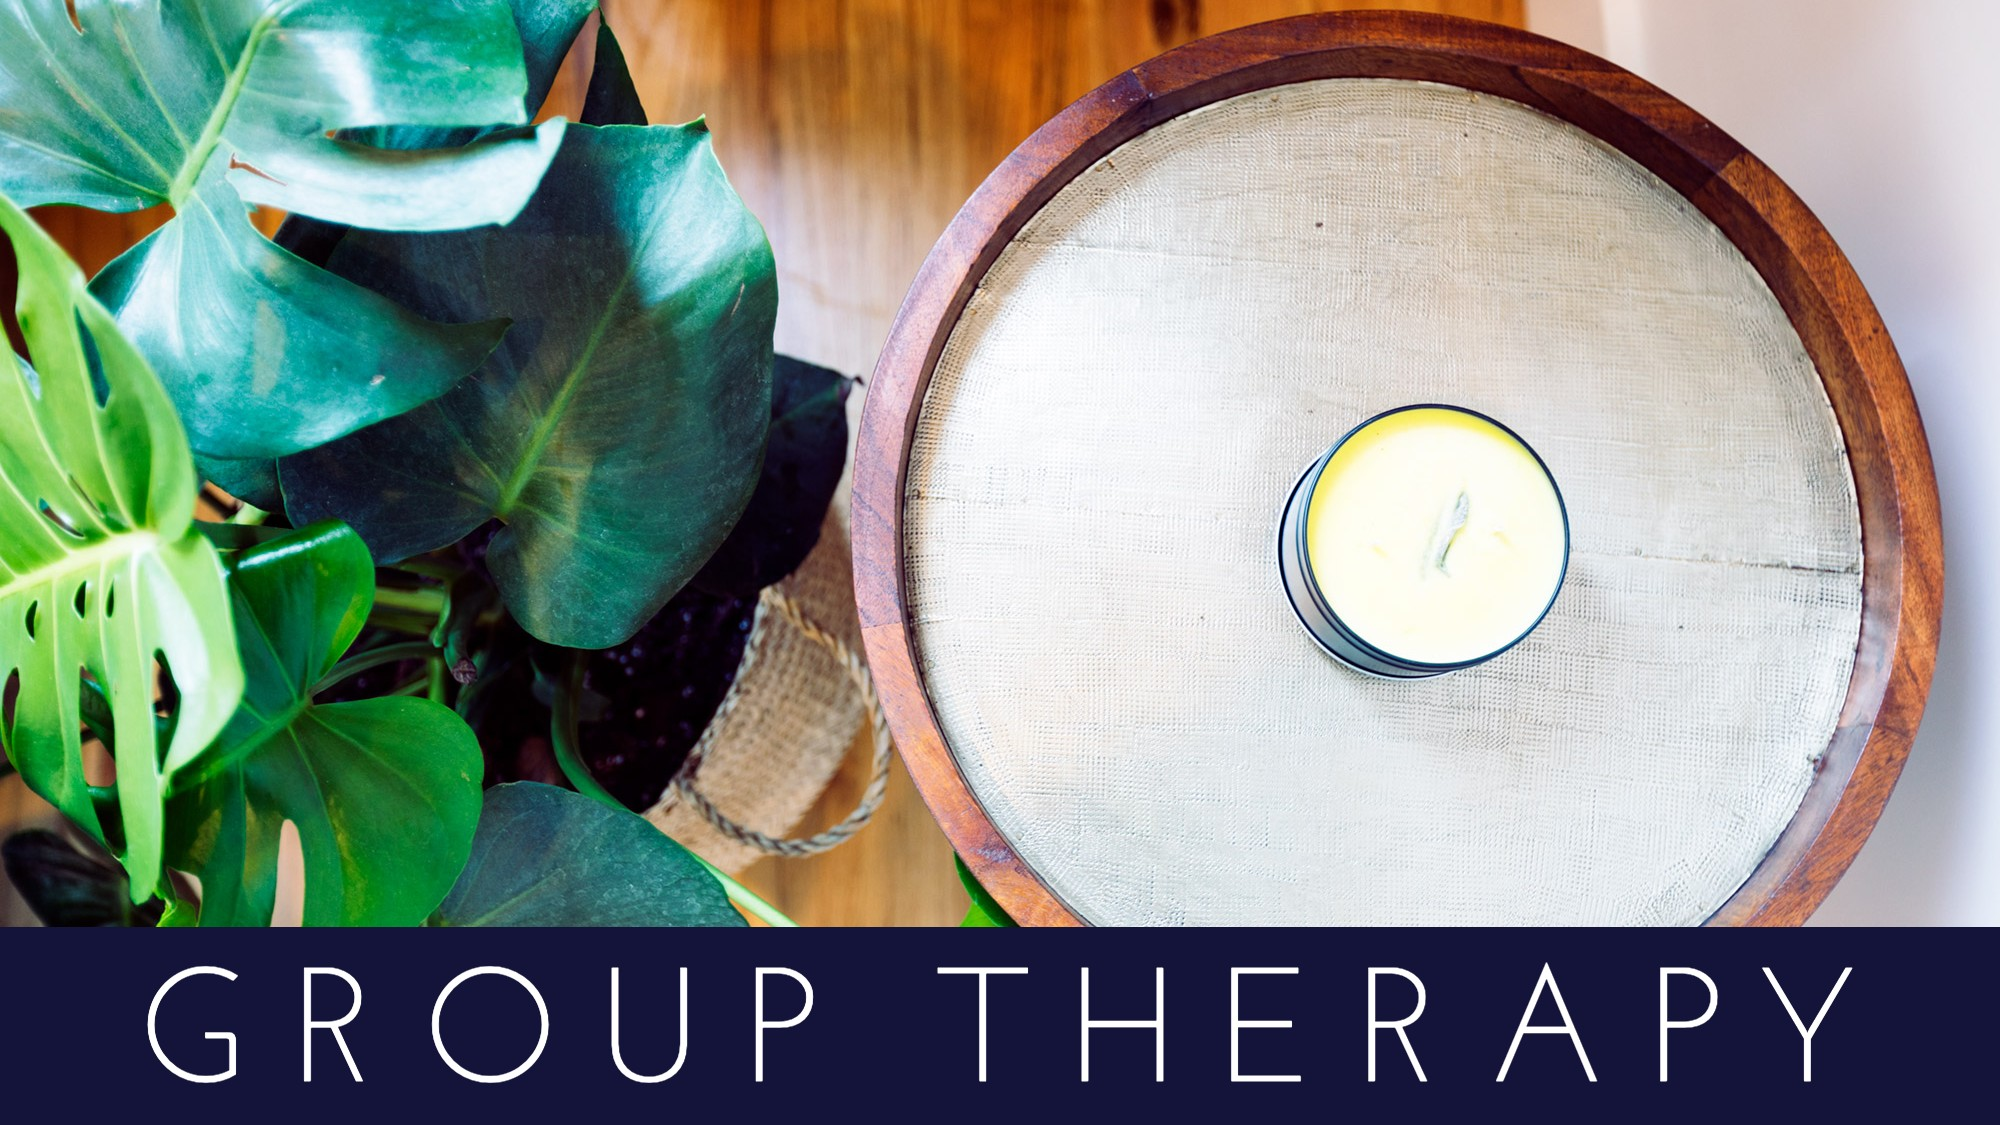 Group_Therapy (2).jpg